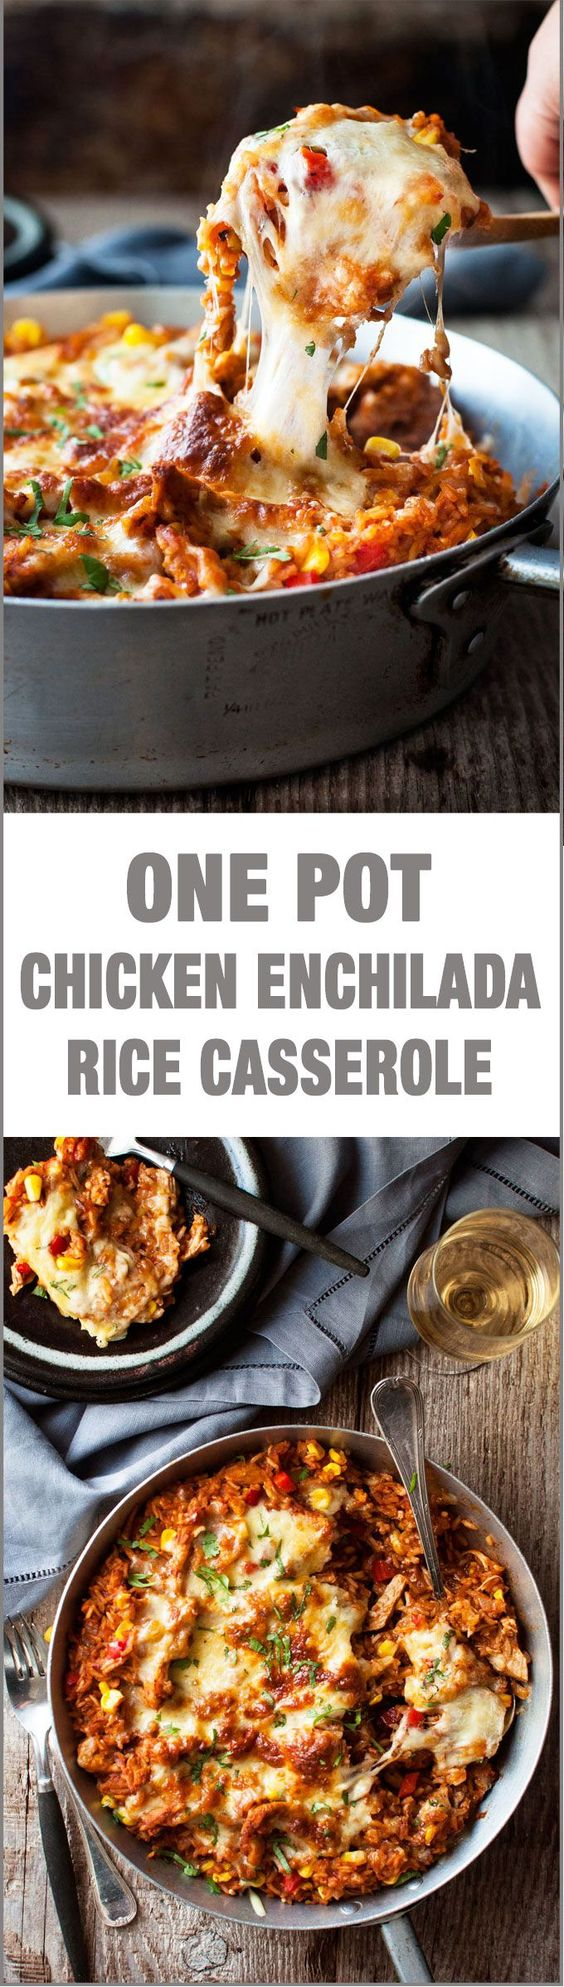 One Pot Chicken Enchilada Rice Casserole - the flavours of chicken enchilada, in a rice casserole, all made in ONE POT on the stove!